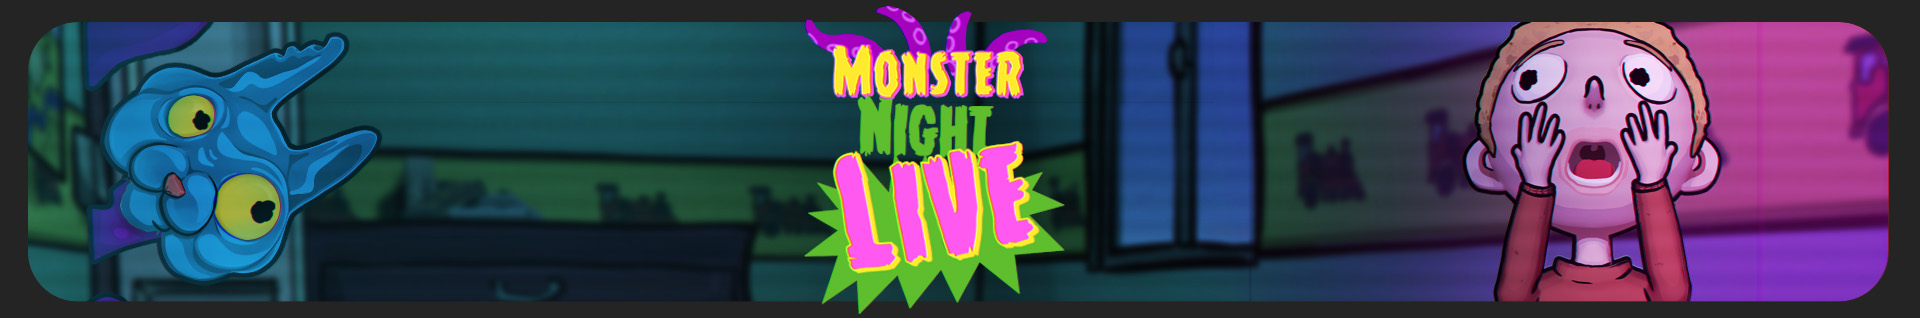 Monster Night Live 2017